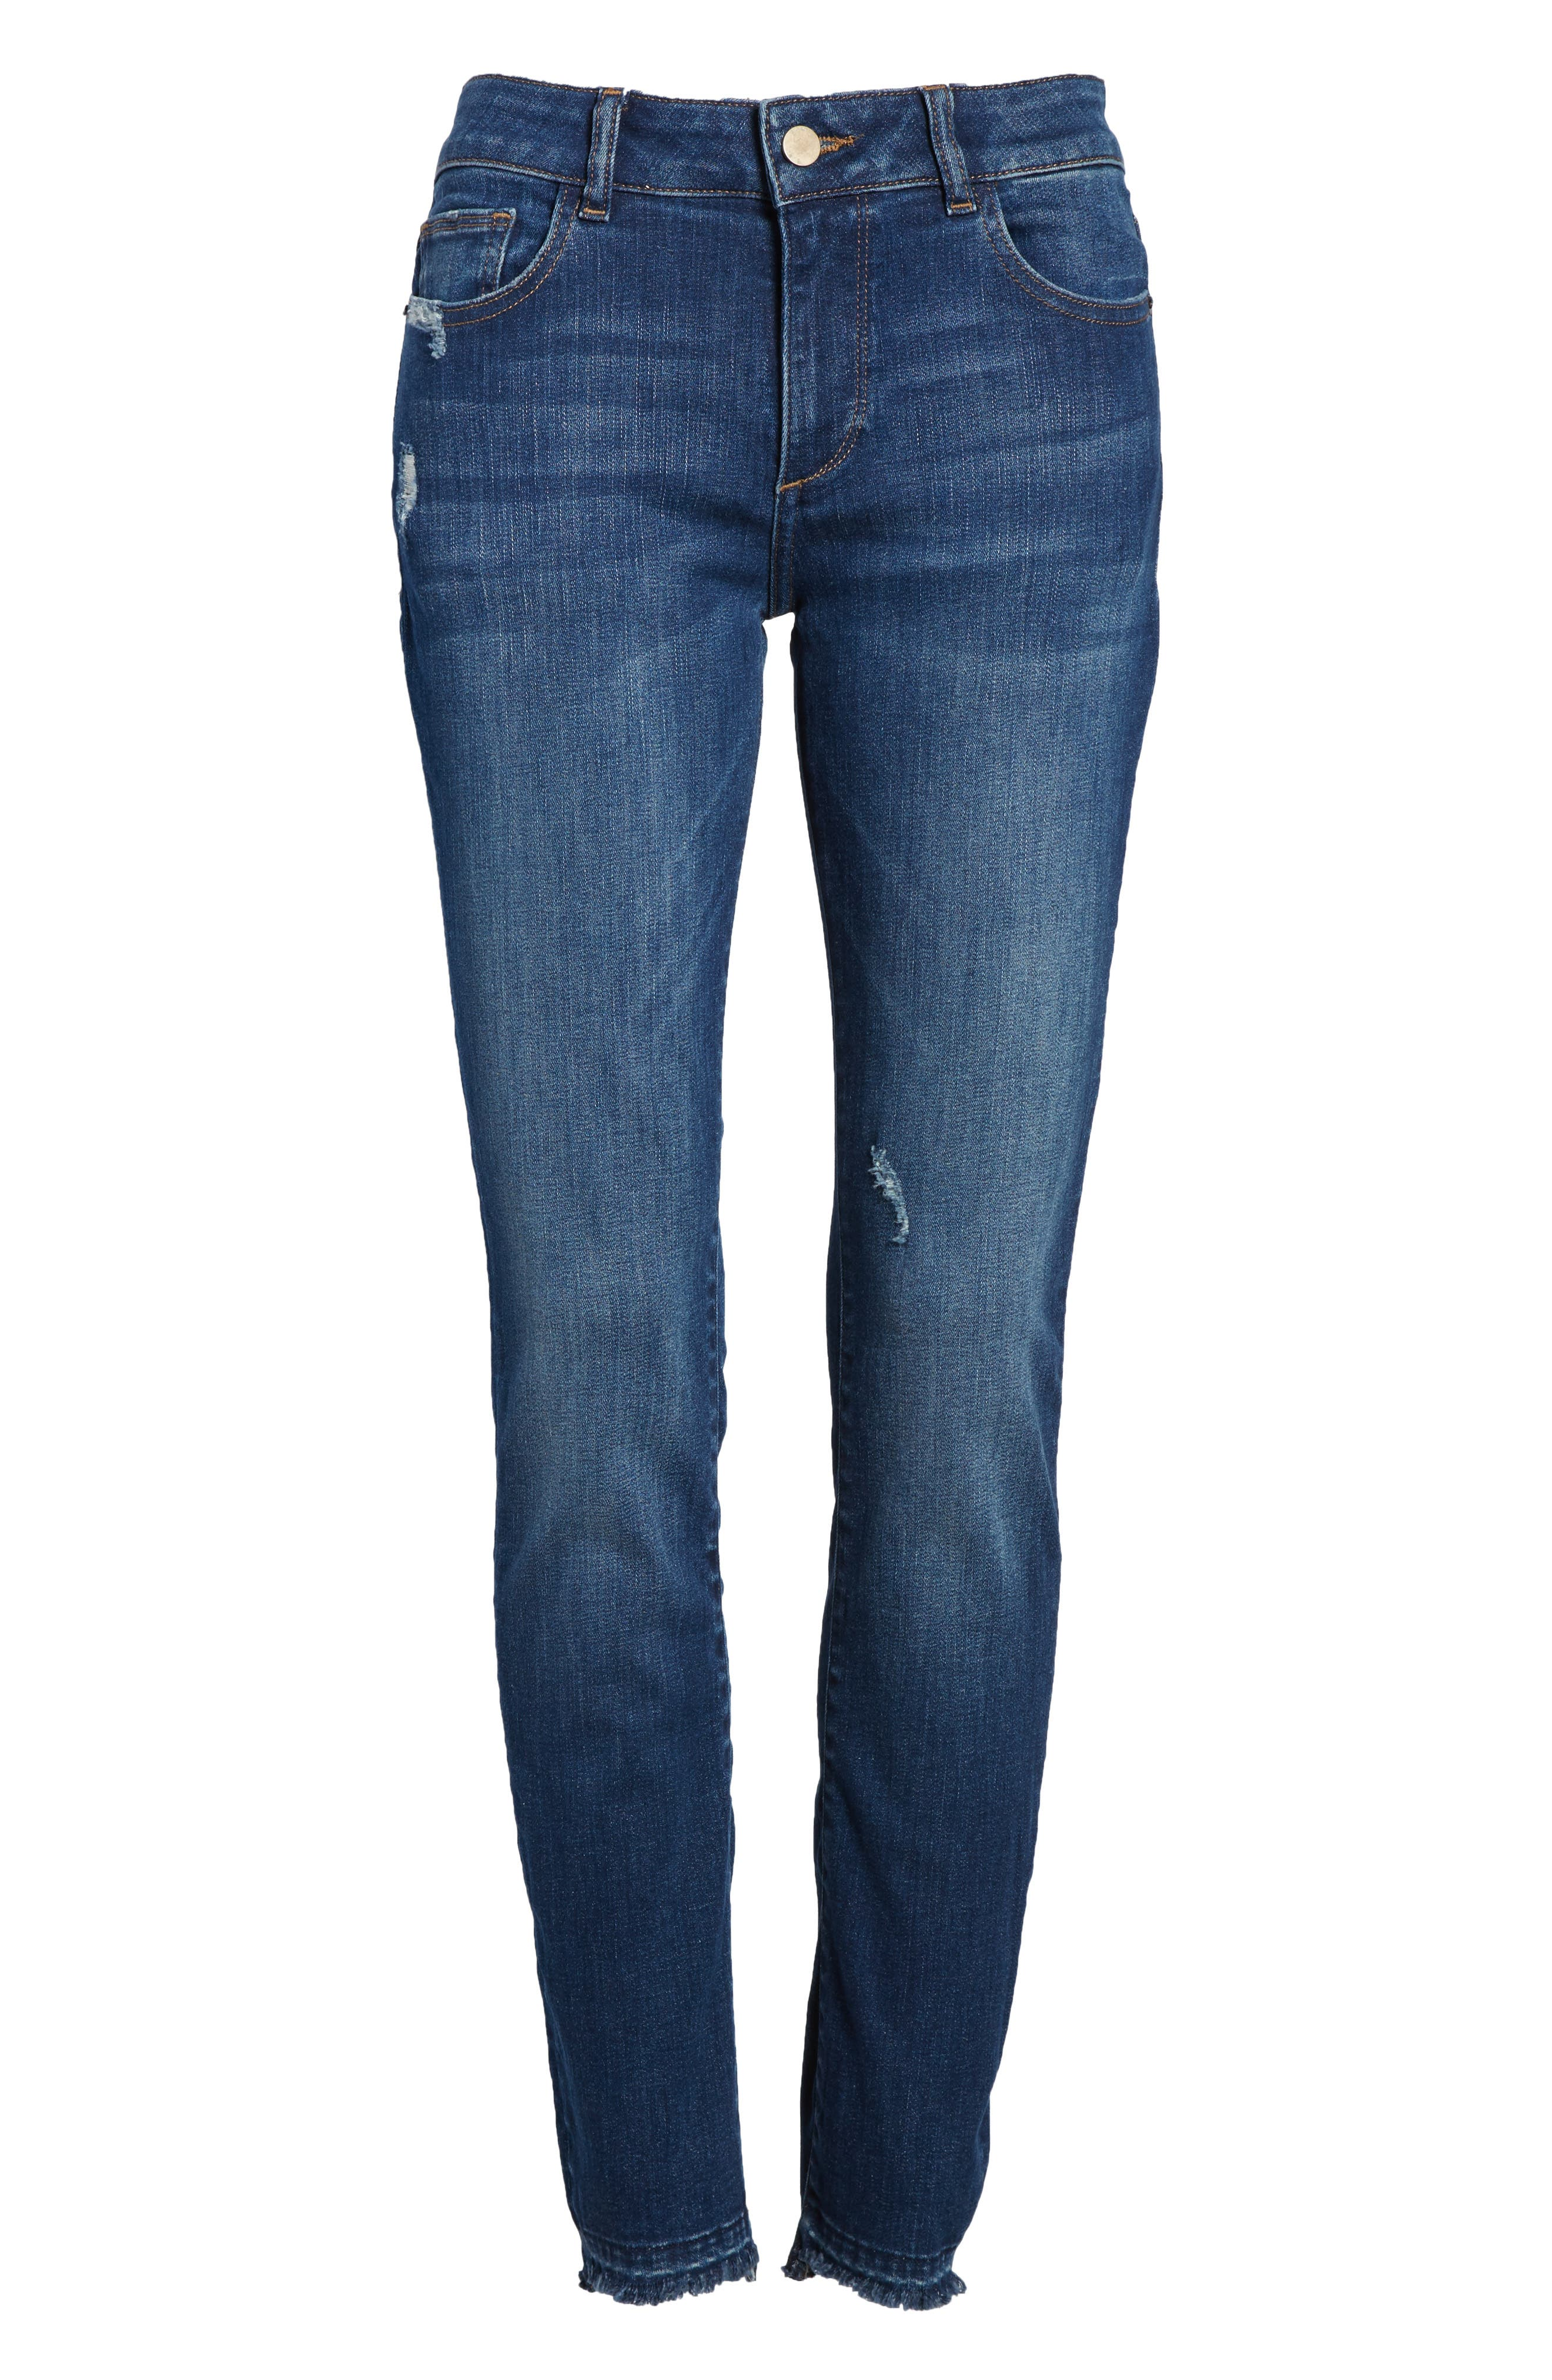 Florence Instasculpt Skinny Jeans,                             Alternate thumbnail 7, color,                             Hughes